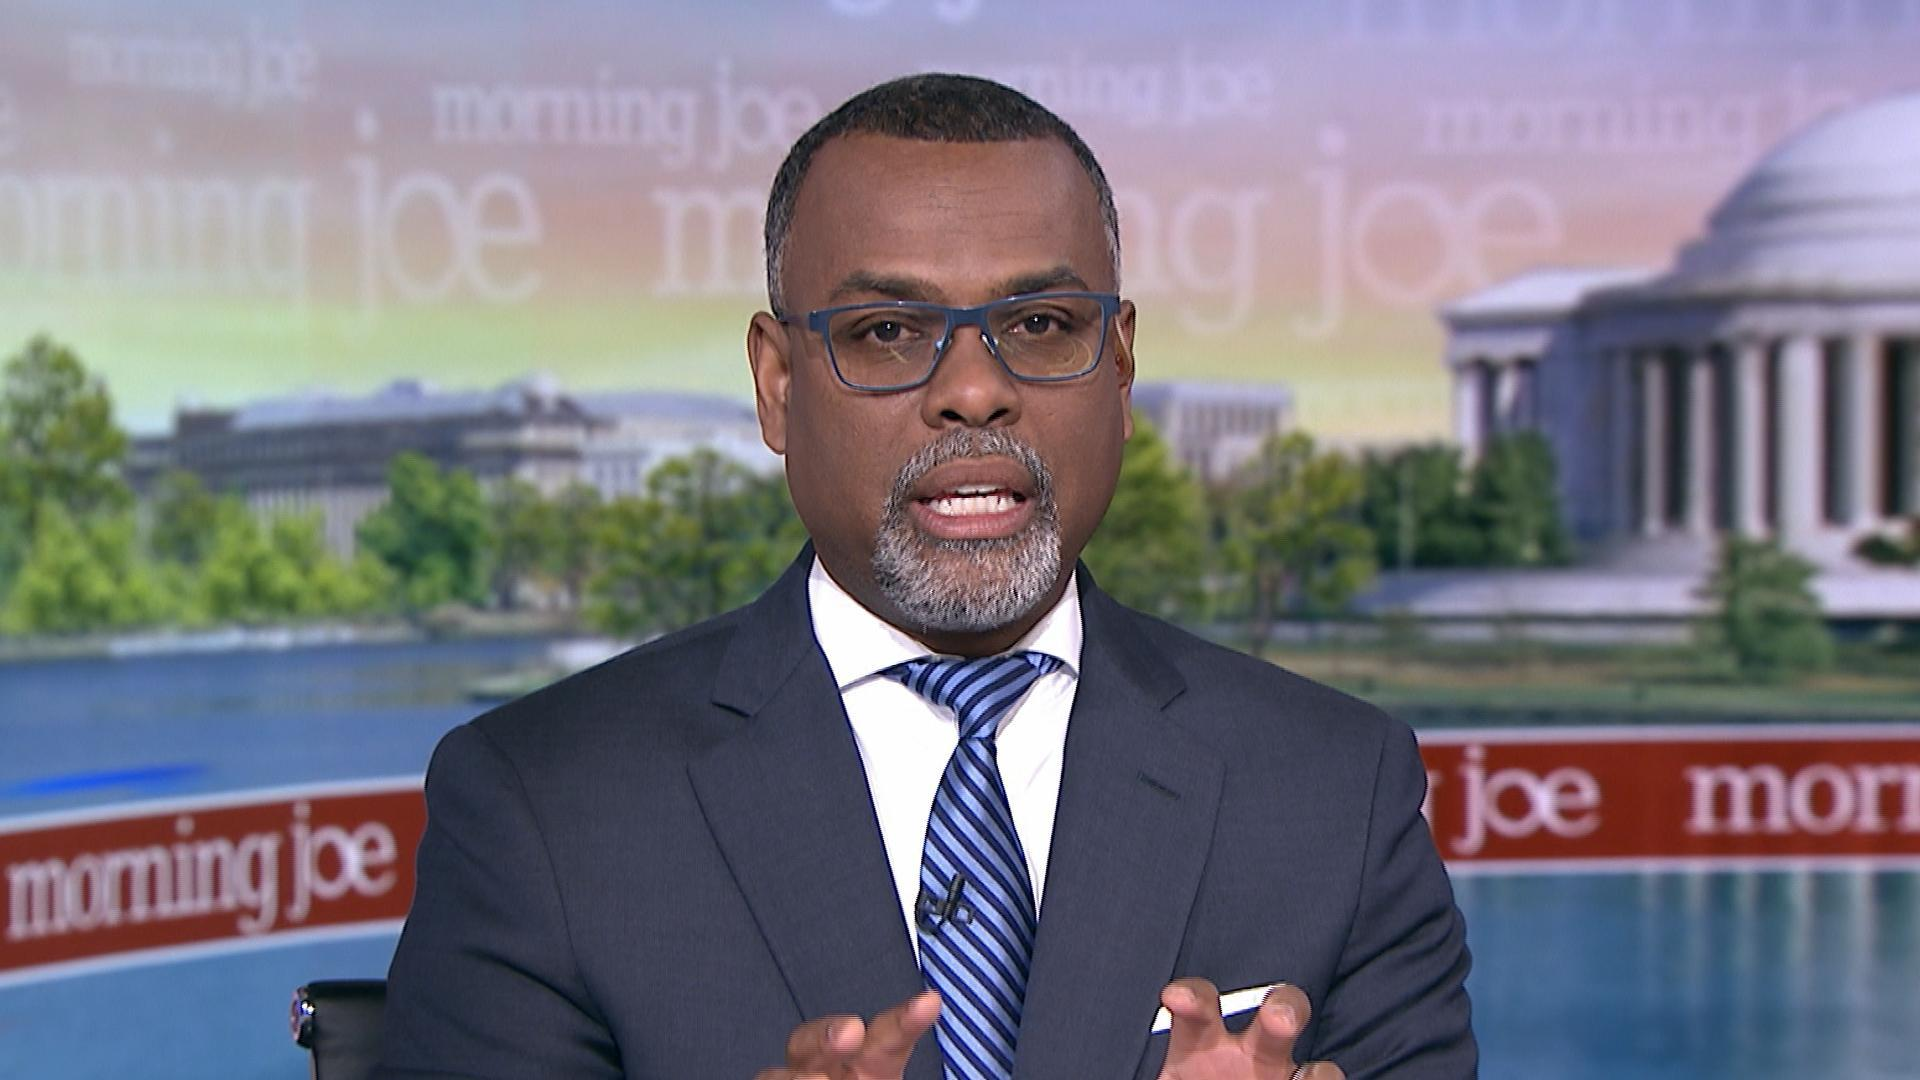 Eddie Glaude Jr.: The 1619 Project shows the historical path to the racism under Trump